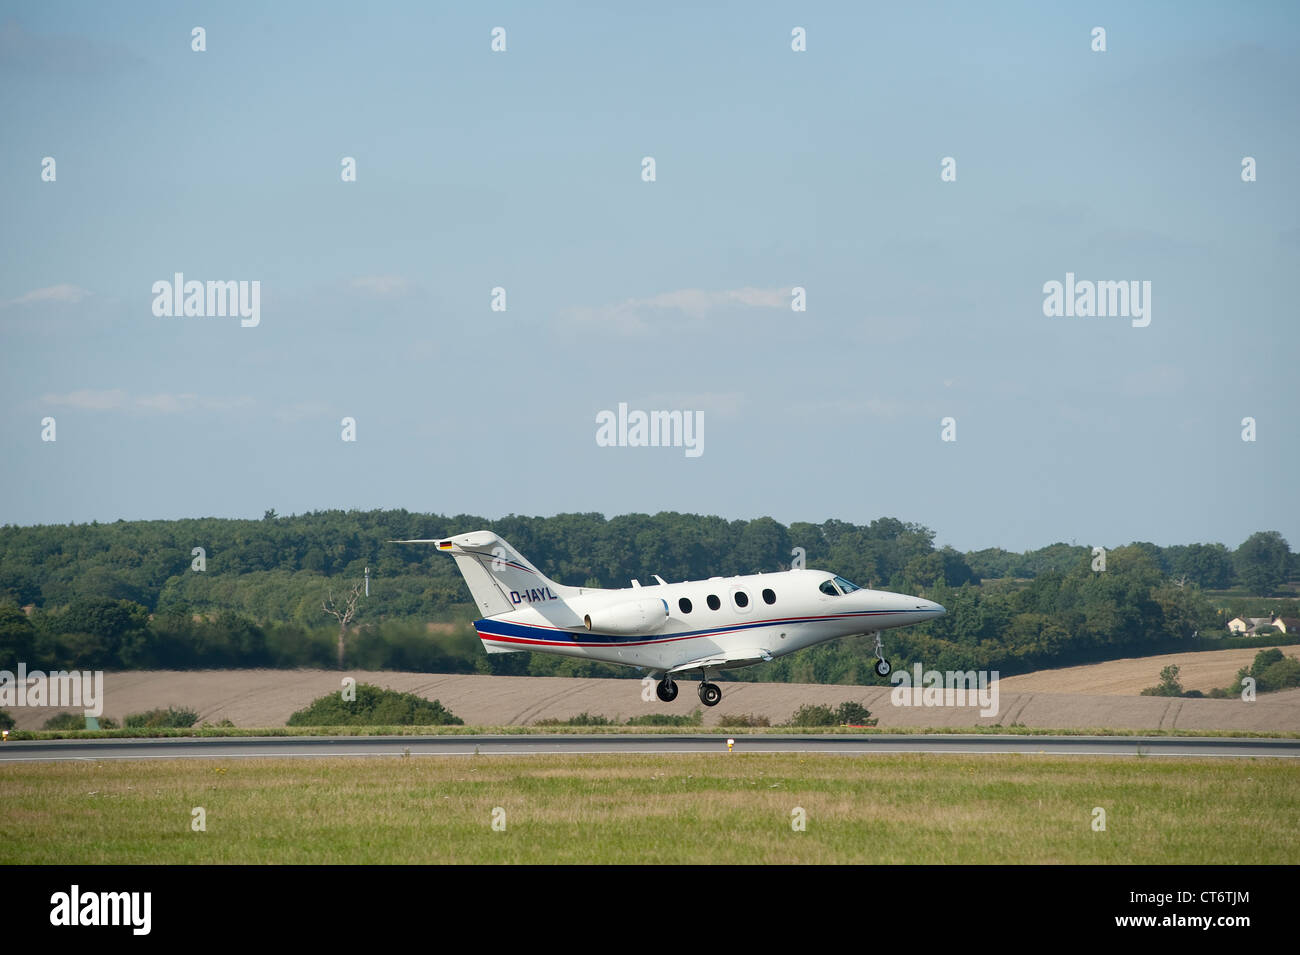 Hawker Beechcraft 390 Premier 1A at Luton airport, England. - Stock Image